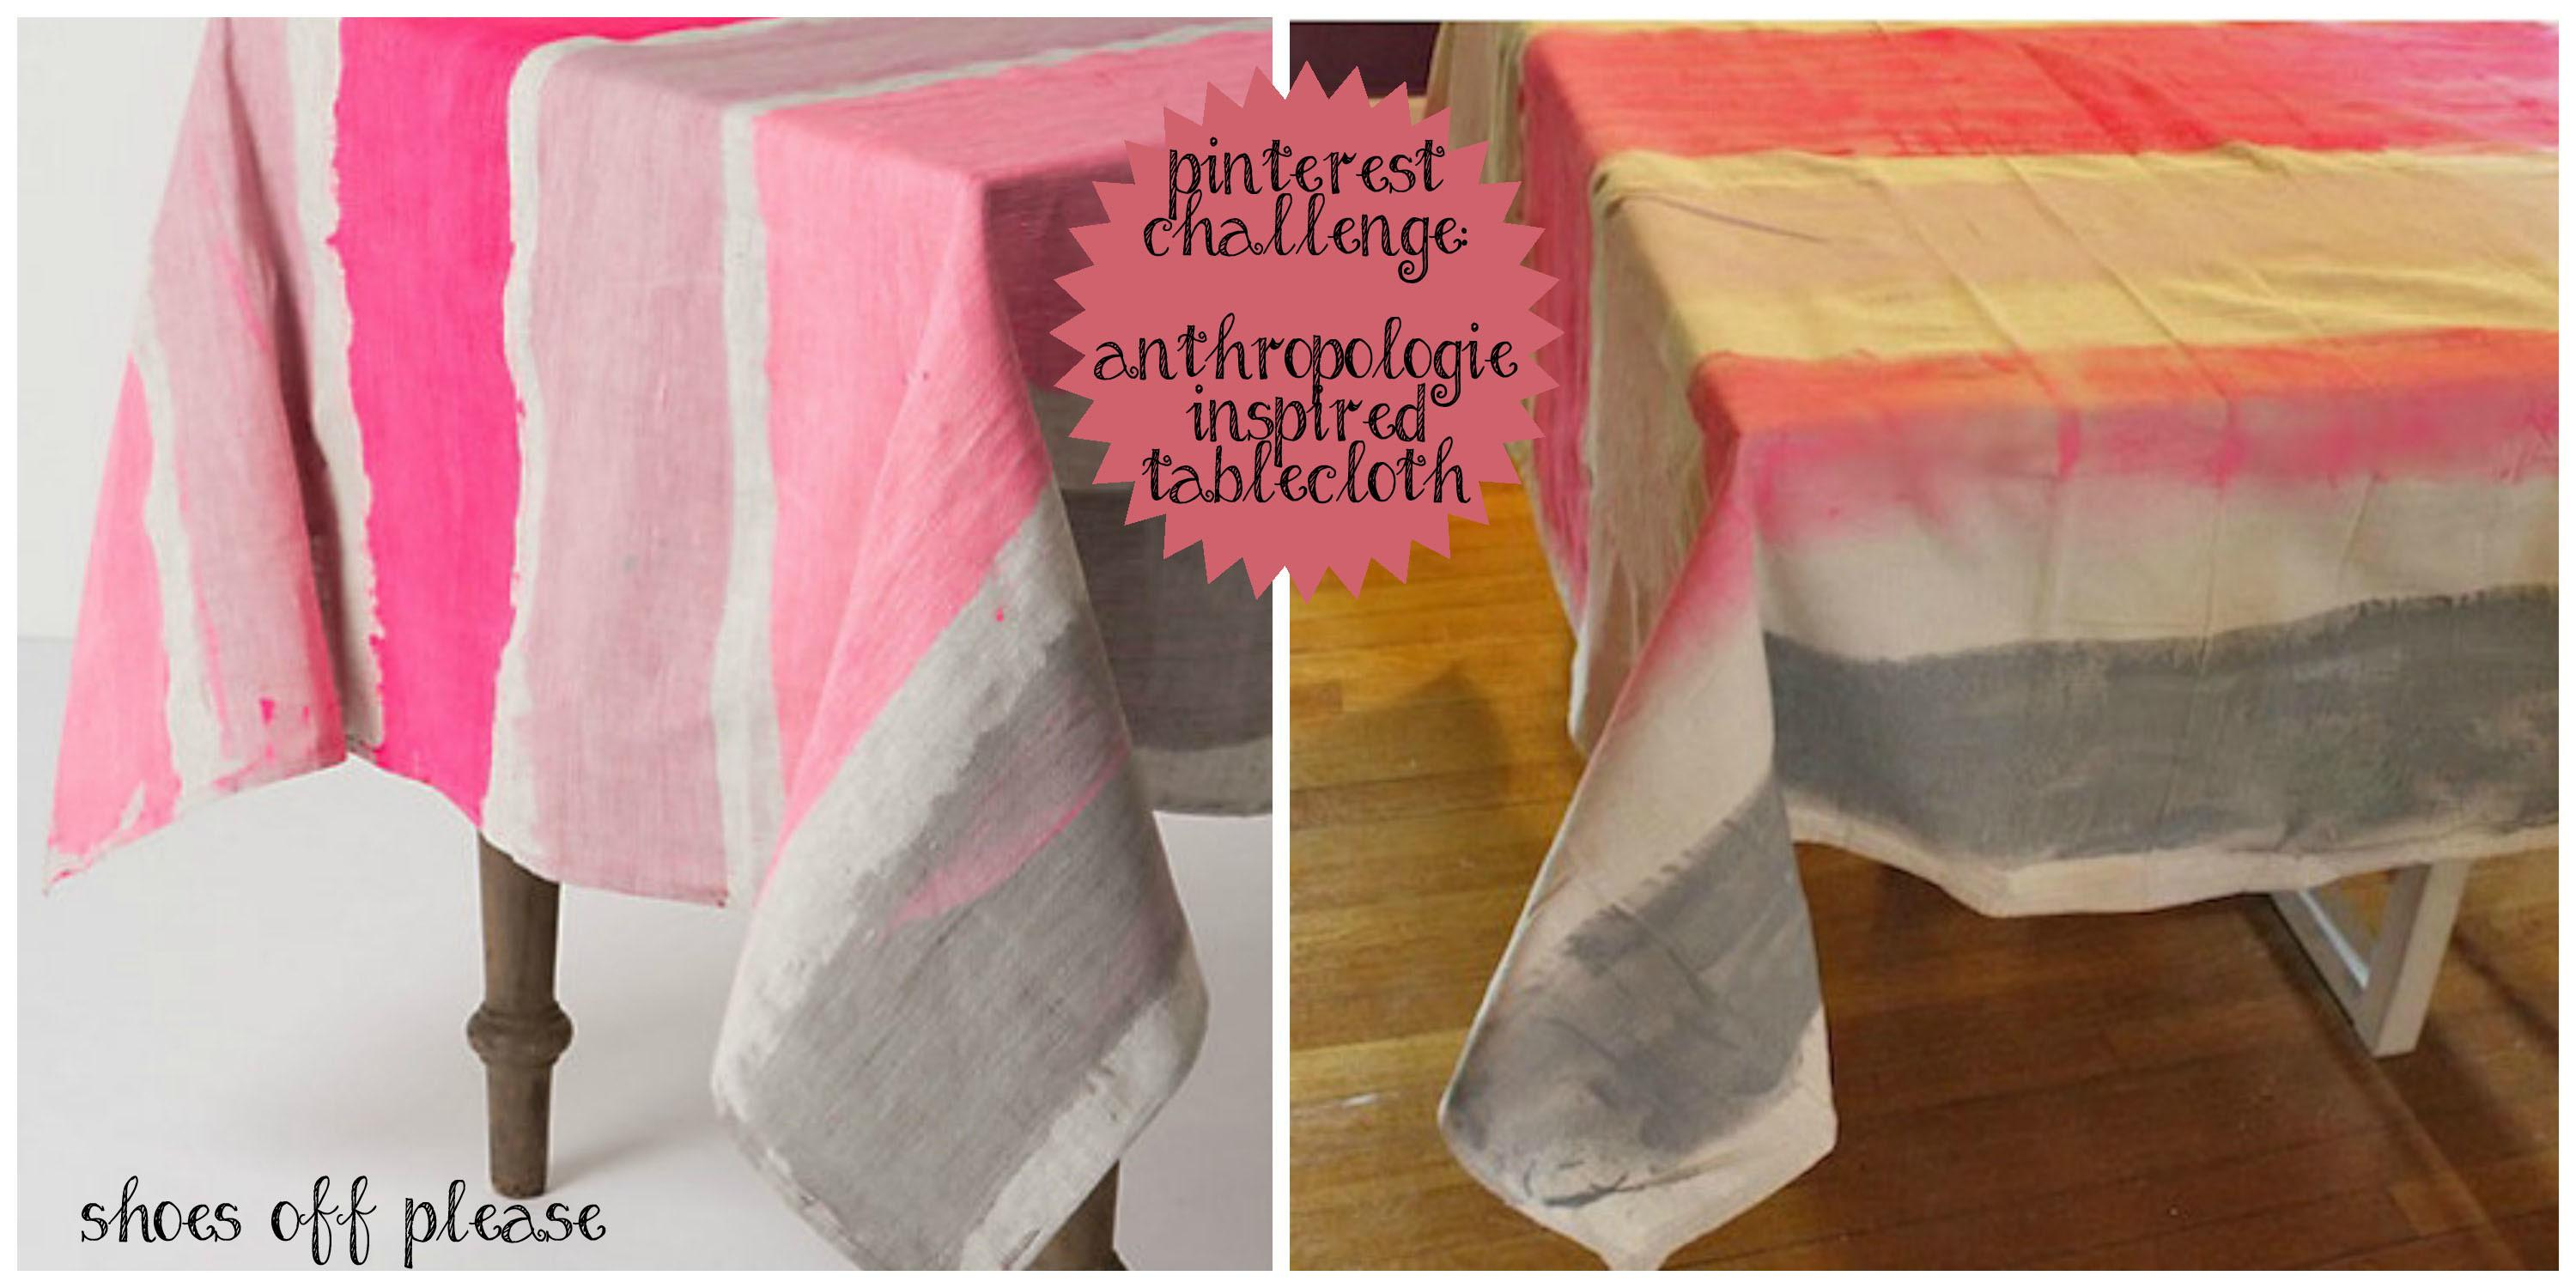 Challenge Diy Anthropologie Tablecloth Shoes